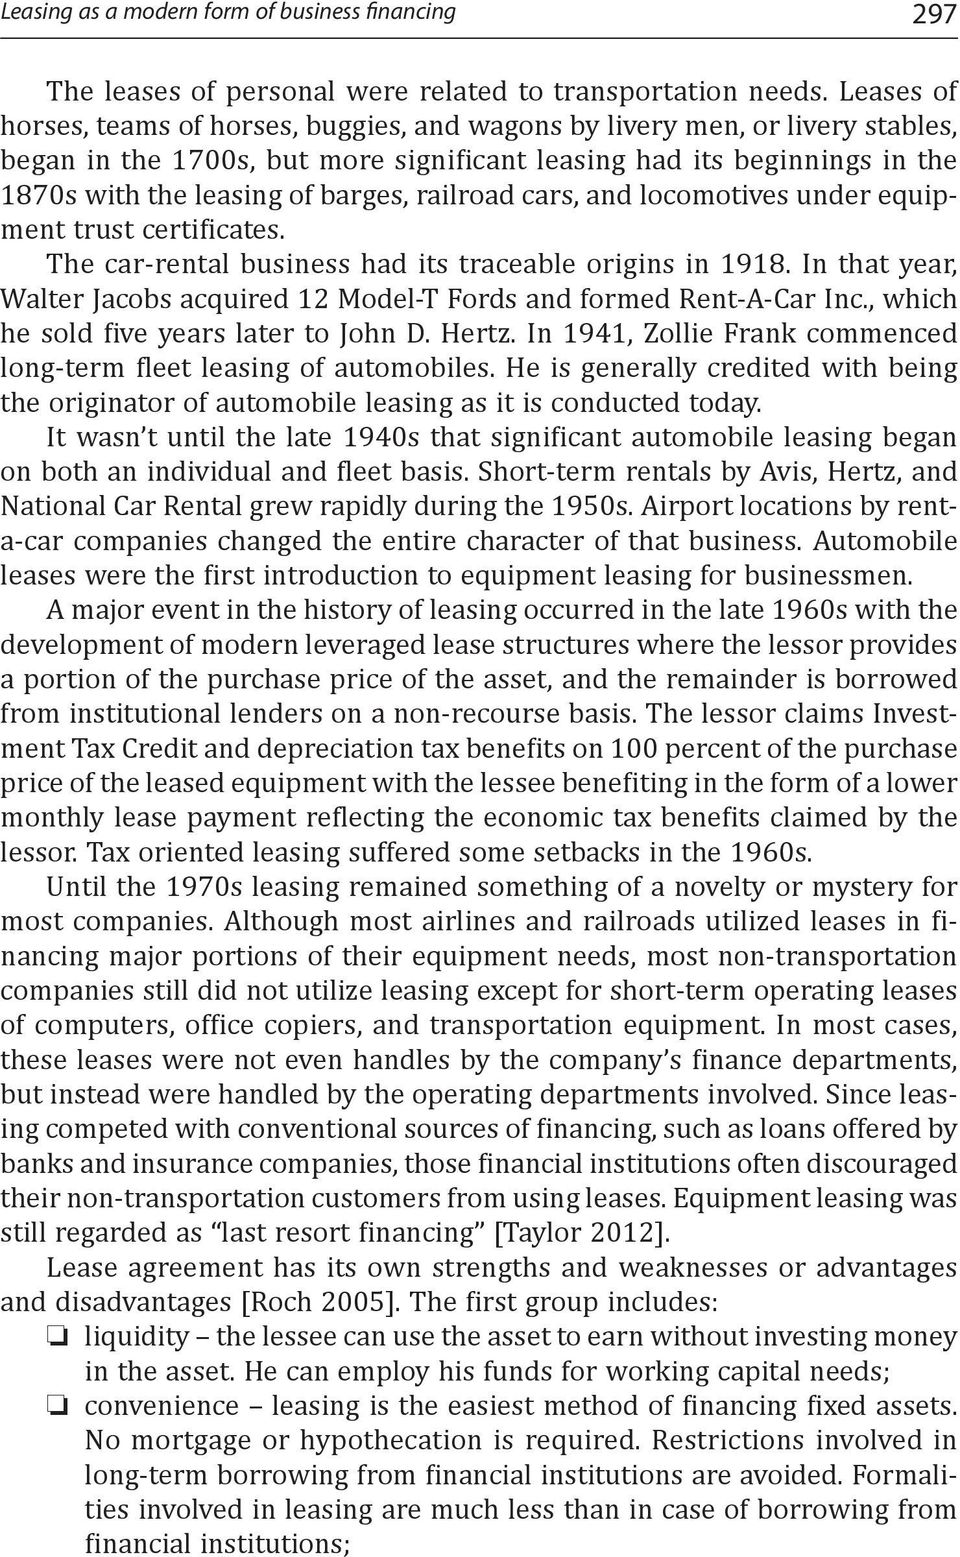 railroad cars, and locomotives under equipment trust certificates. The car-rental business had its traceable origins in 1918.